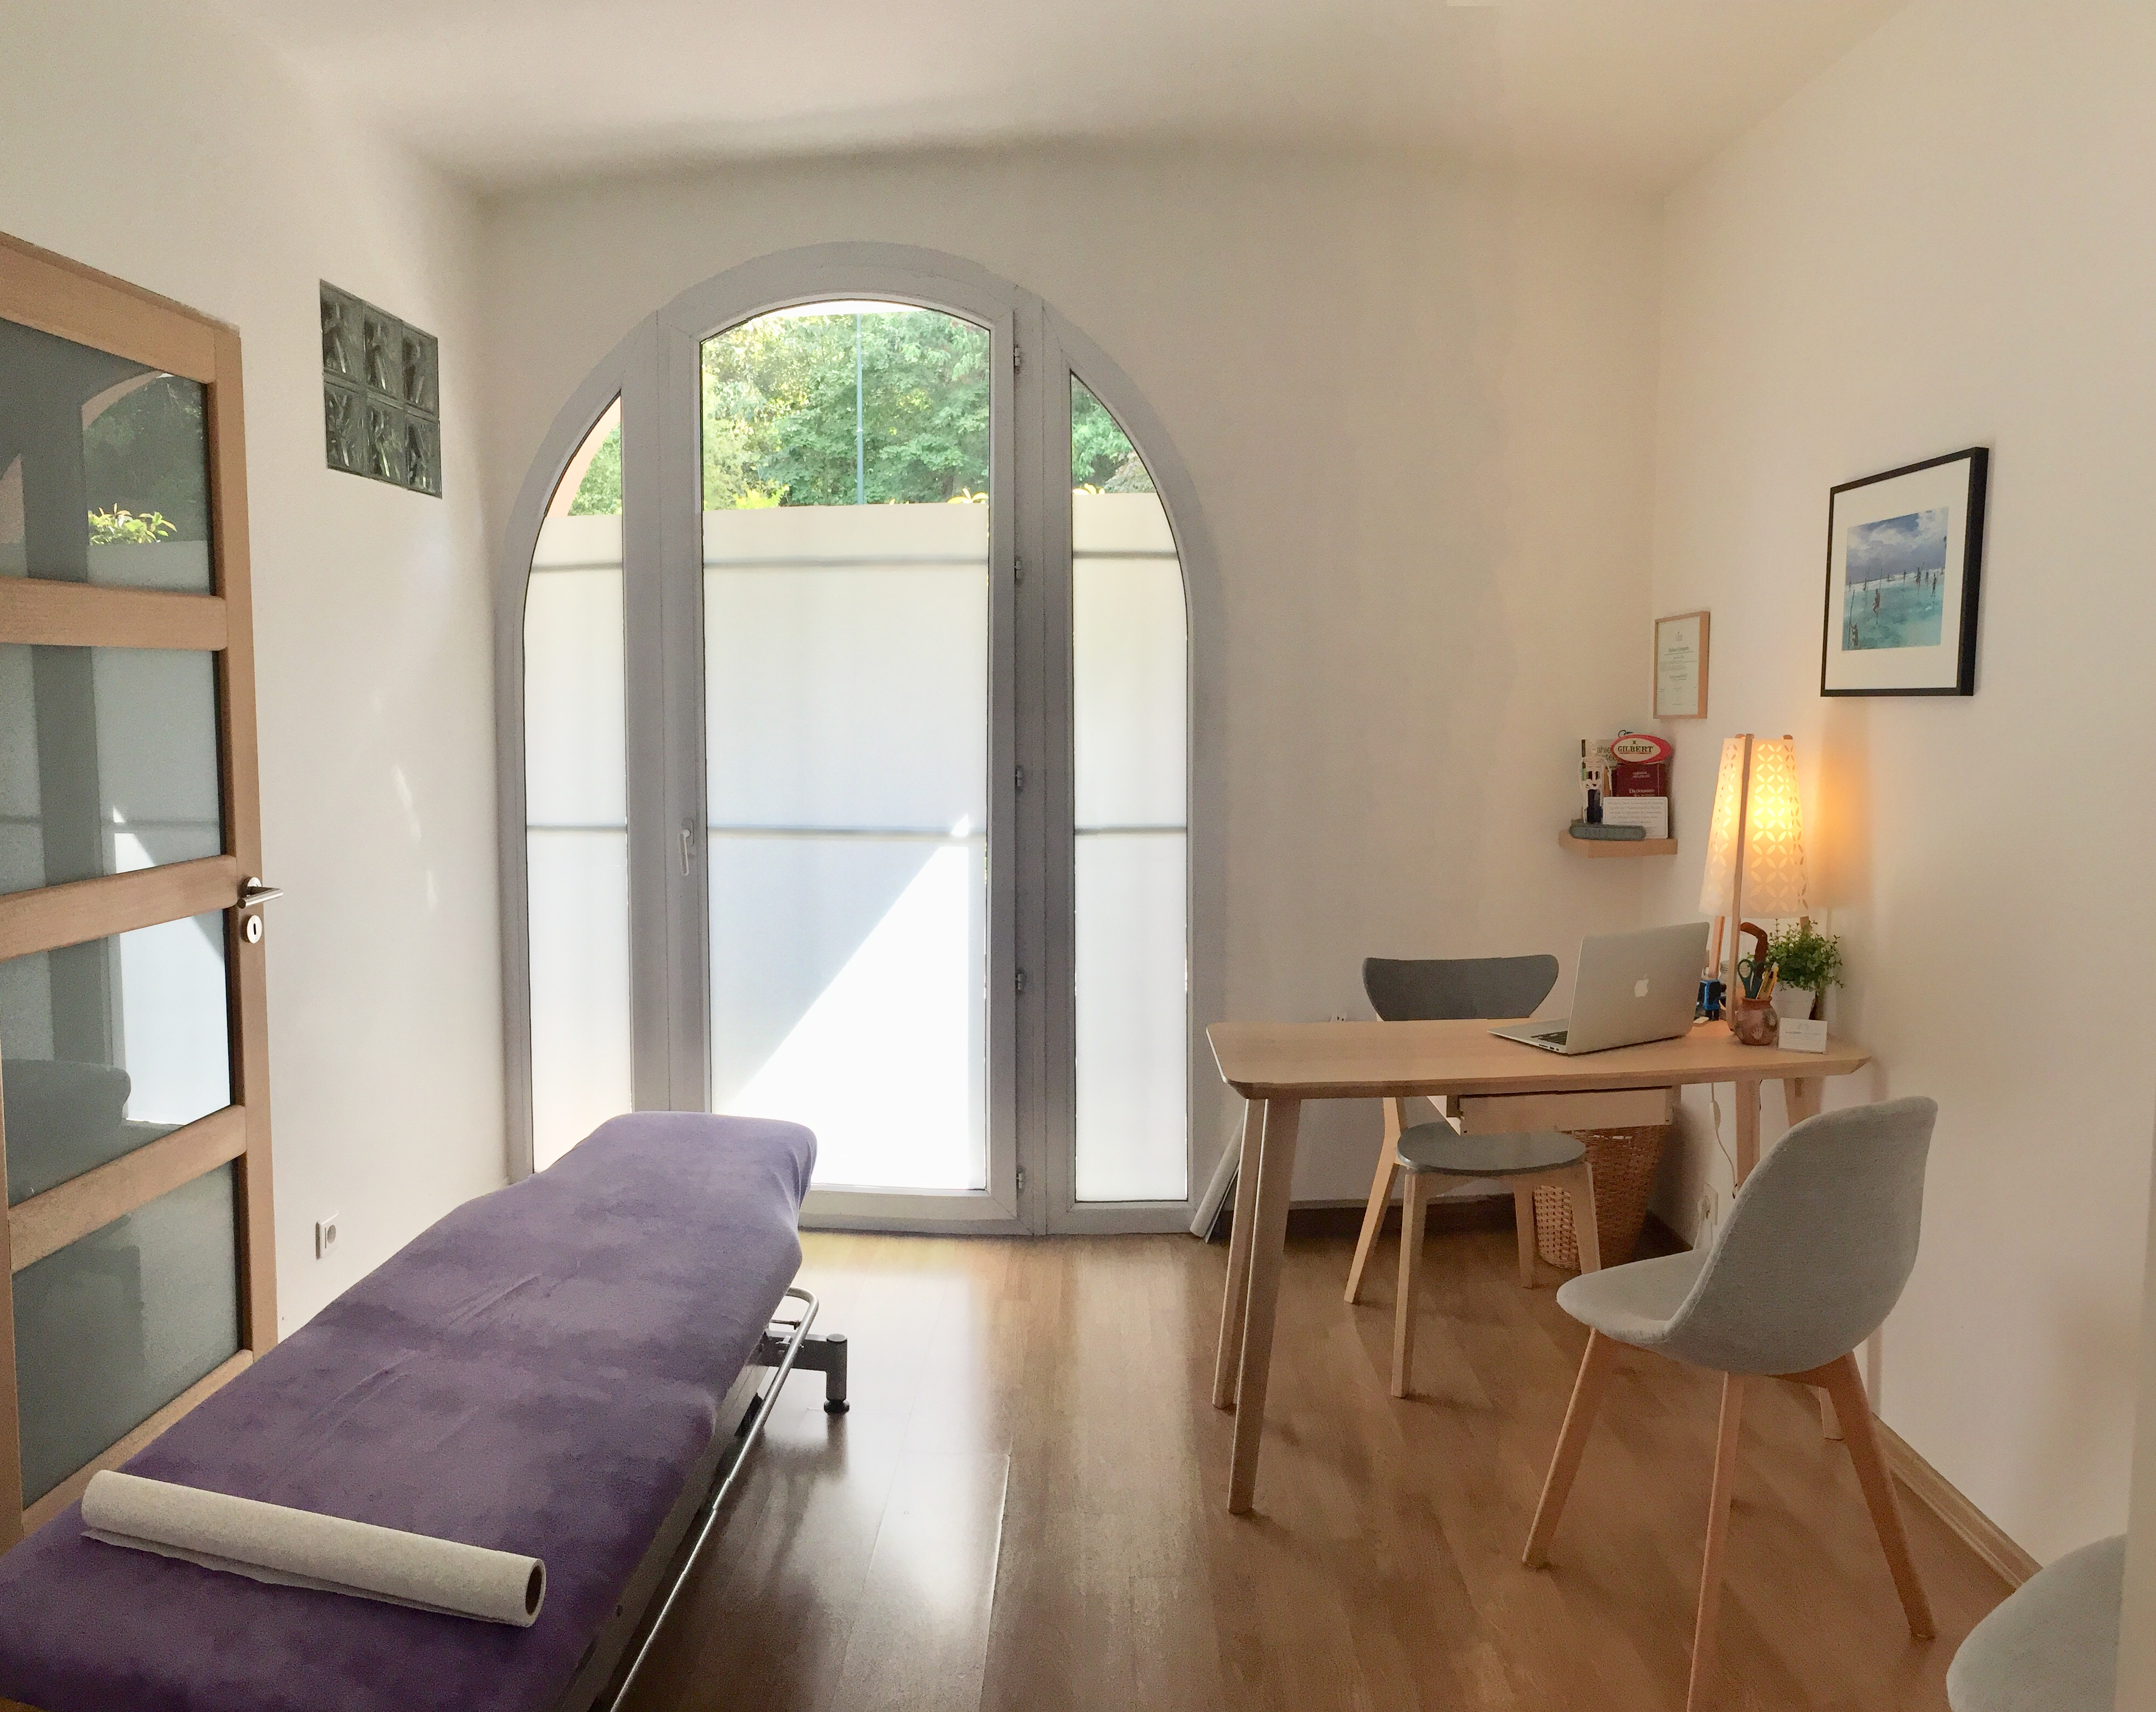 osteopathe-le-plessis-robinson-paupert-b